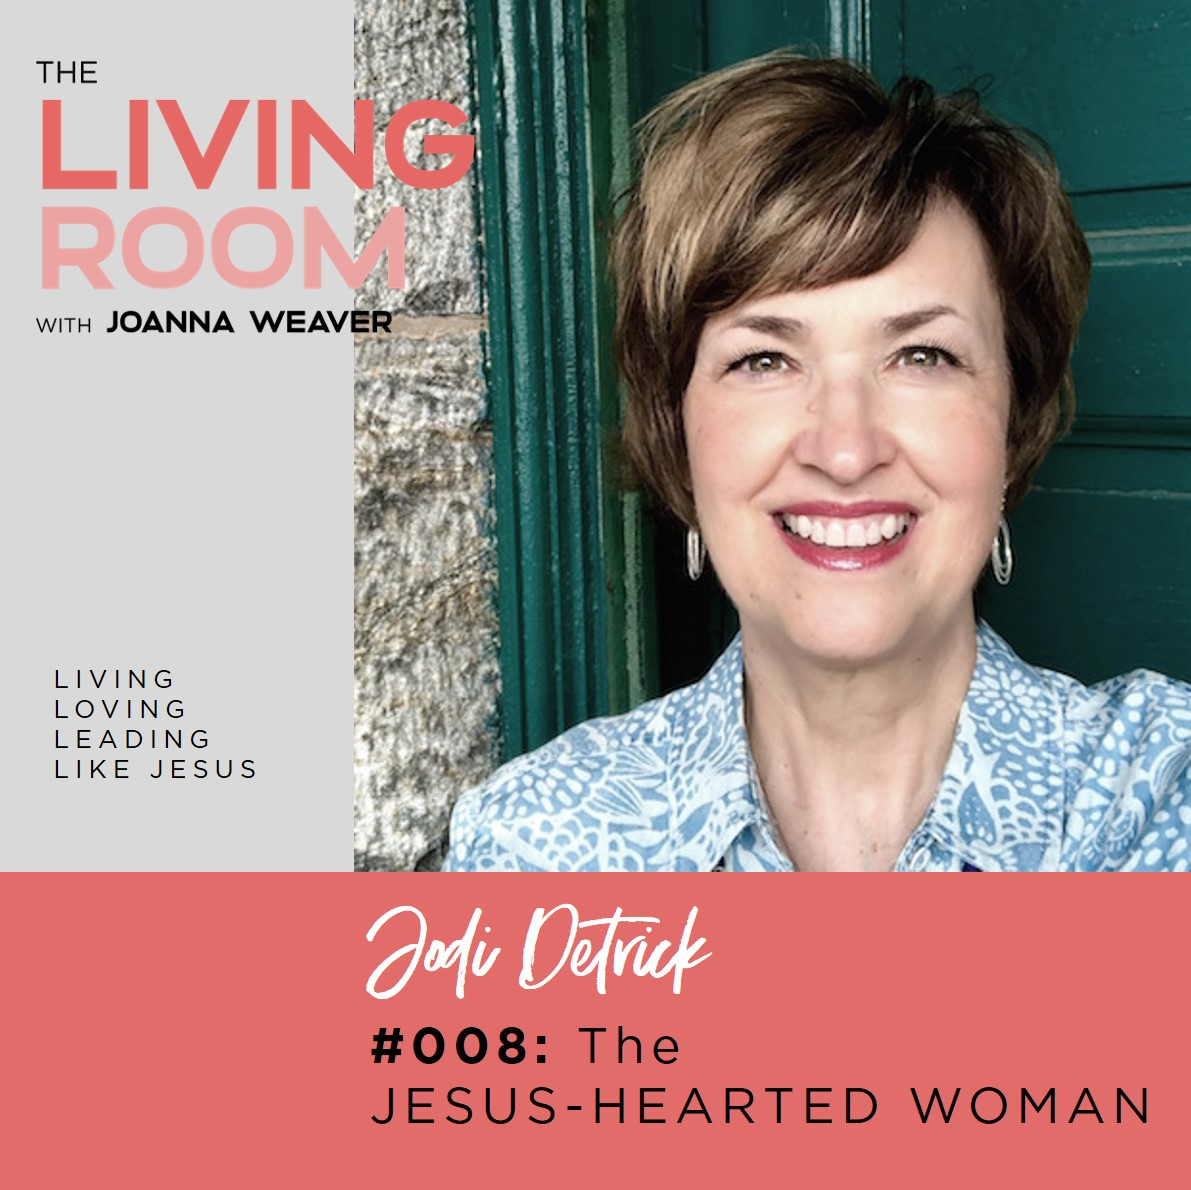 Jodi Detrick shares from her book, The Jesus-Hearted Woman on The Living Room with Joanna Weaver - LISTEN @ www.JoannaWeaverBooks.com/008